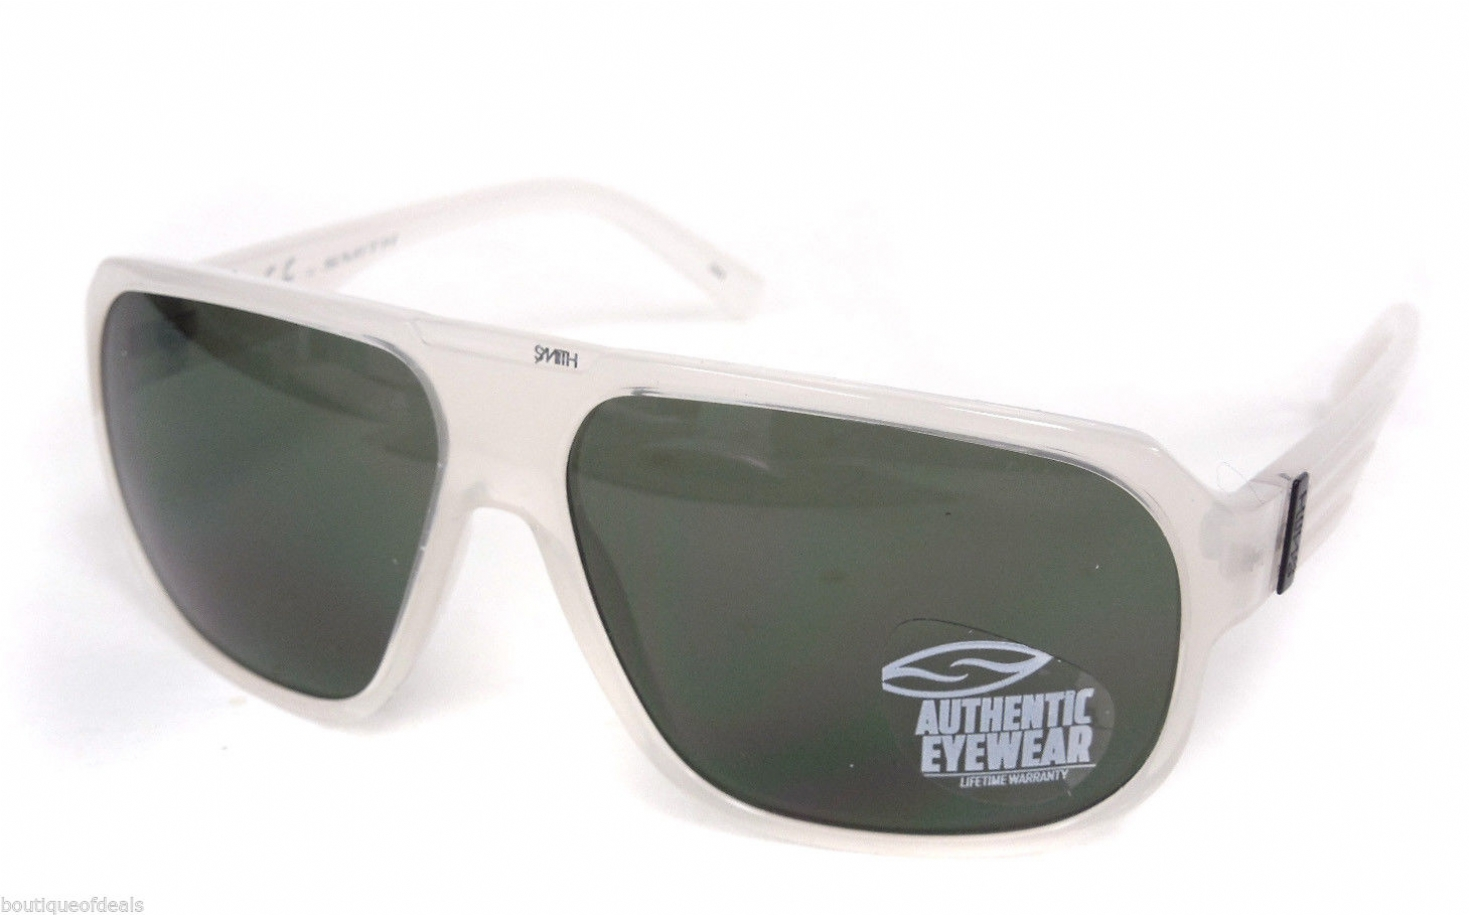 04d79d70577 Buy Smith Optics Sunglasses directly from OpticsFast.com